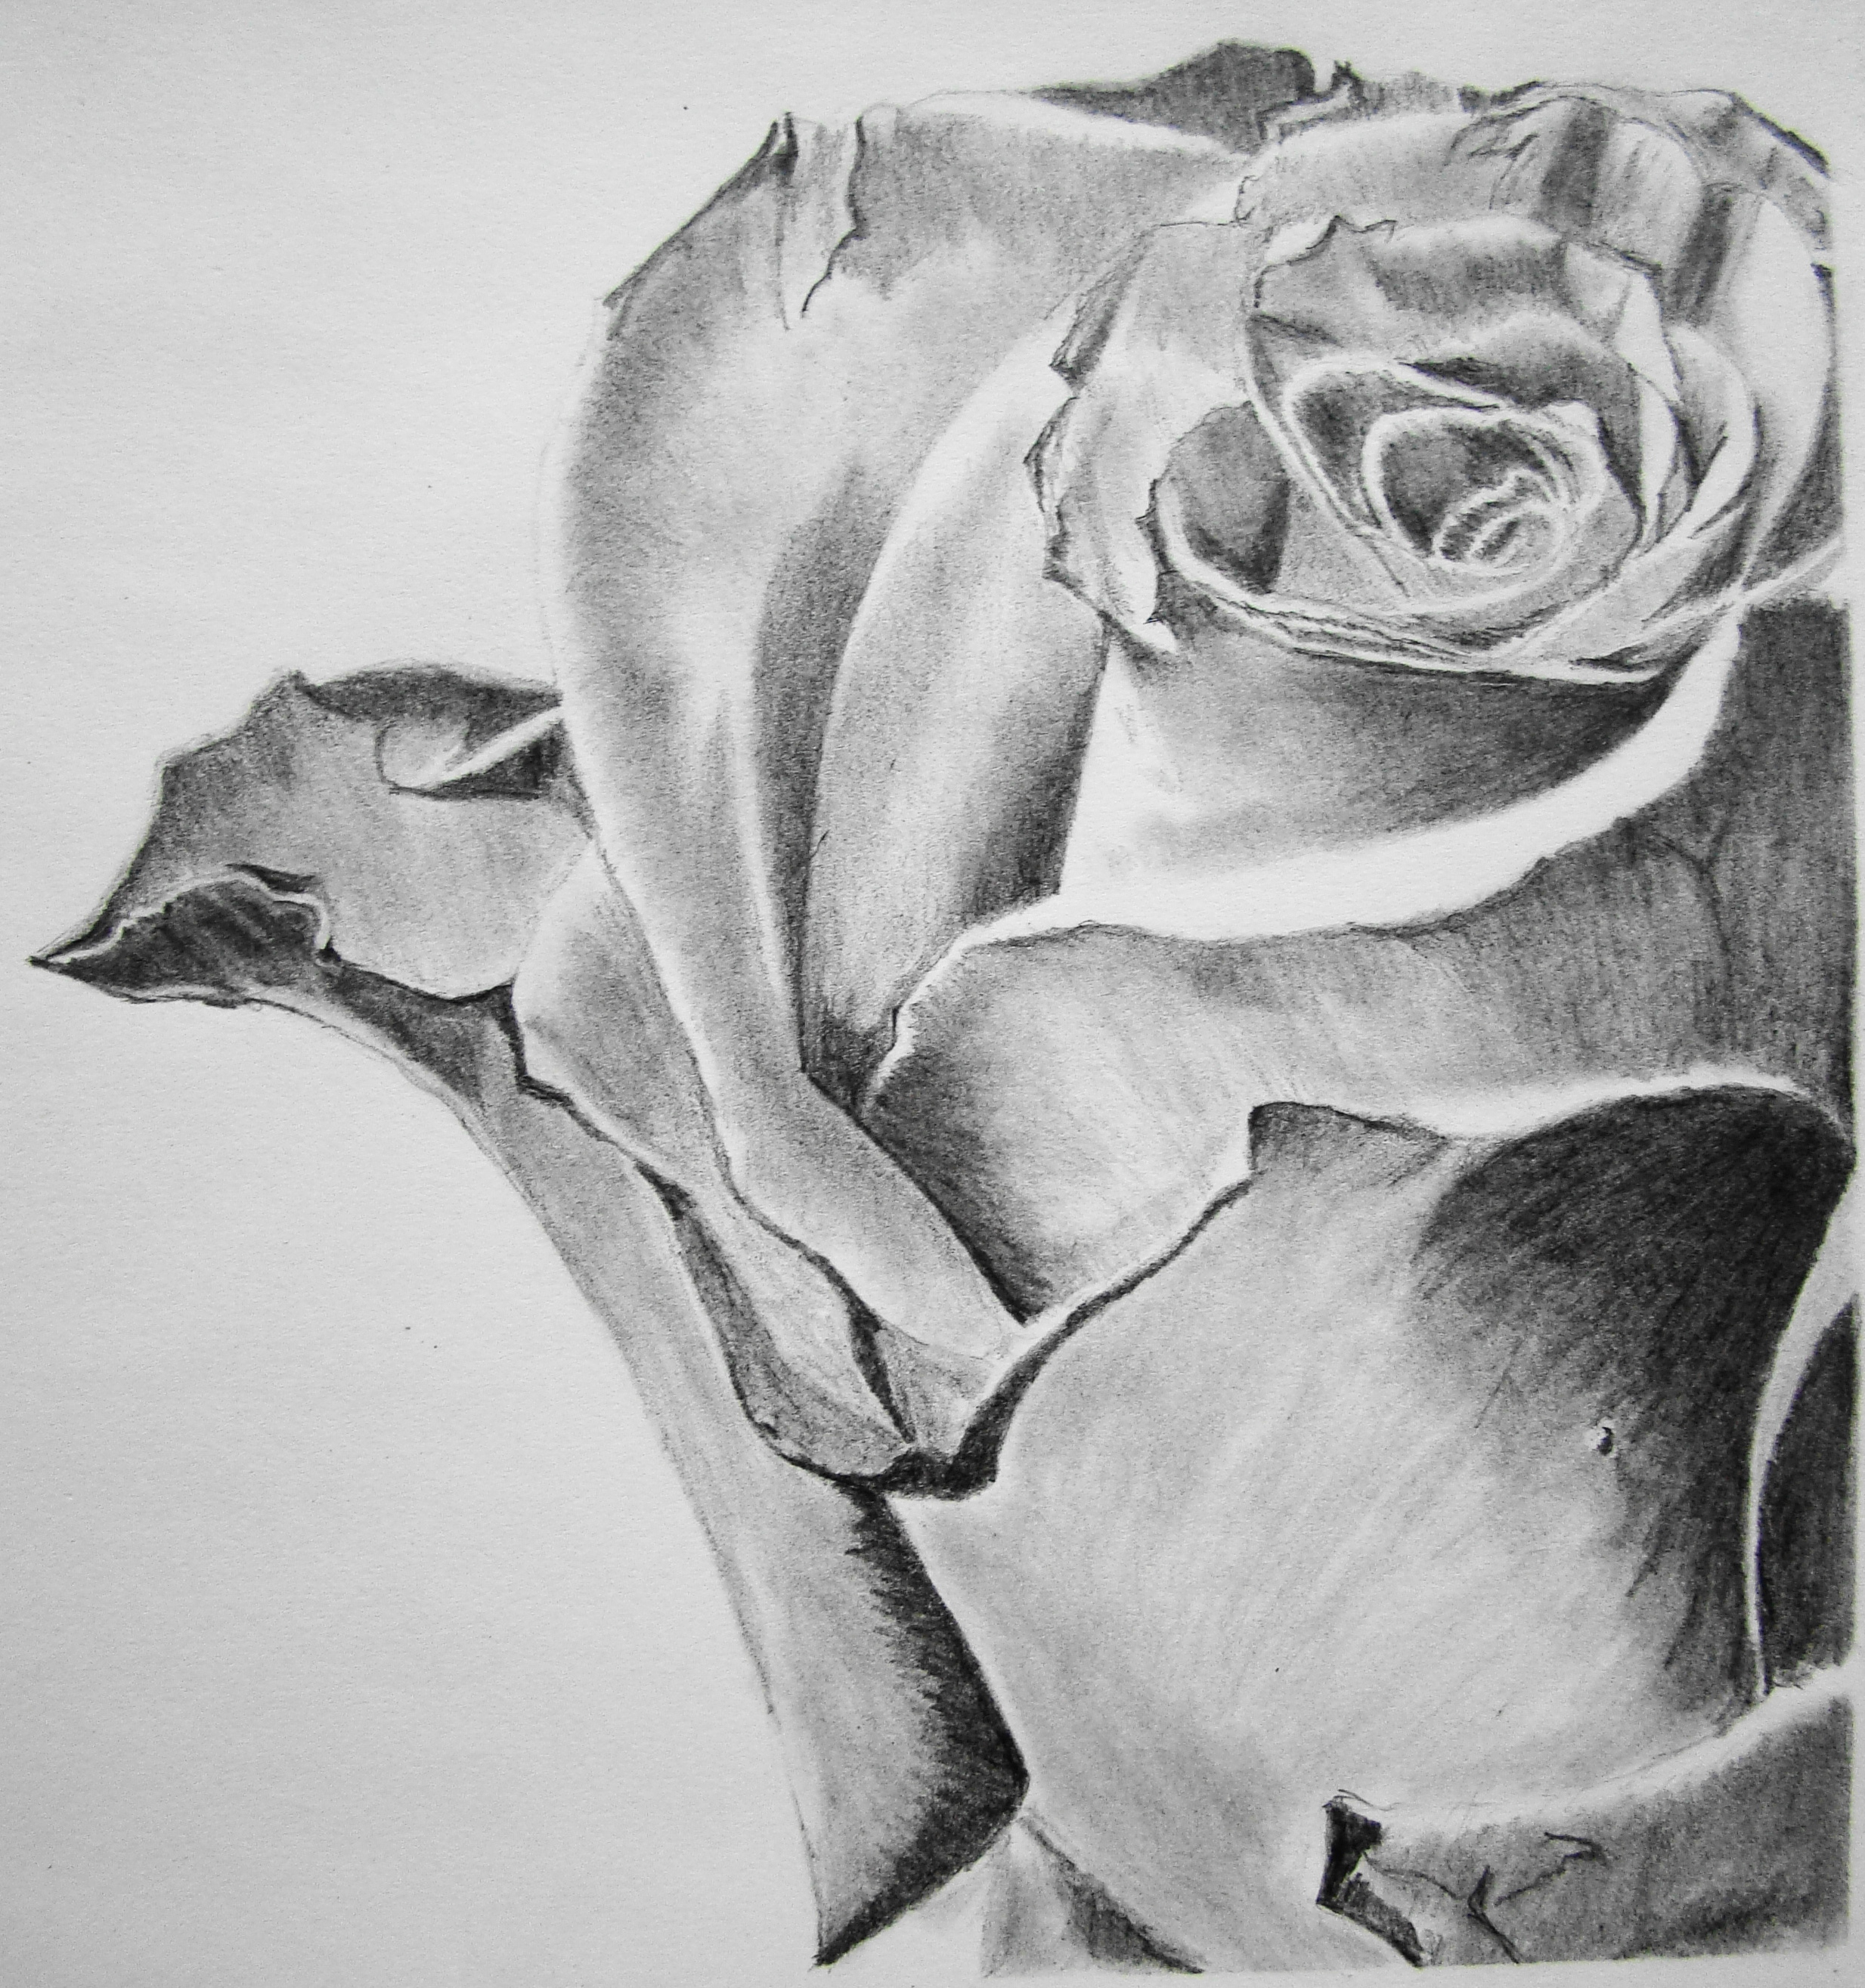 Pencil Drawings & other on Pinterest | Pencil Drawings ...